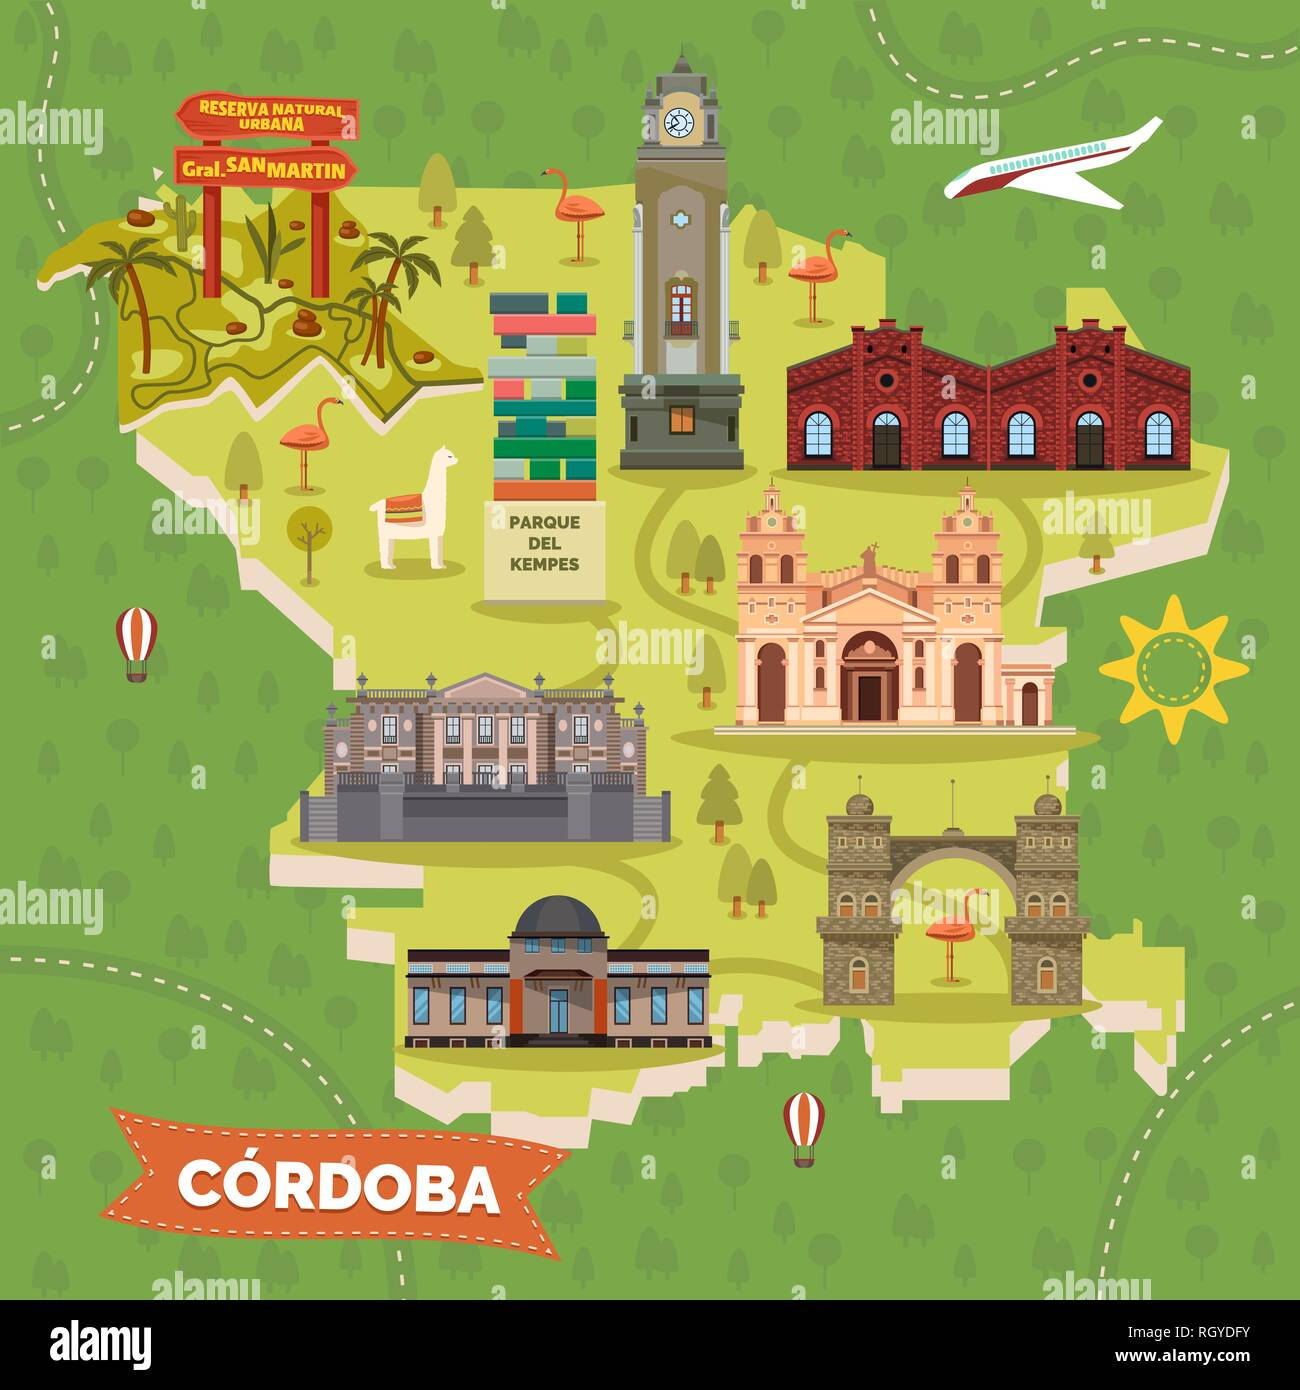 Argentina Cordoba map with sightseeing landmarks - Stock Vector